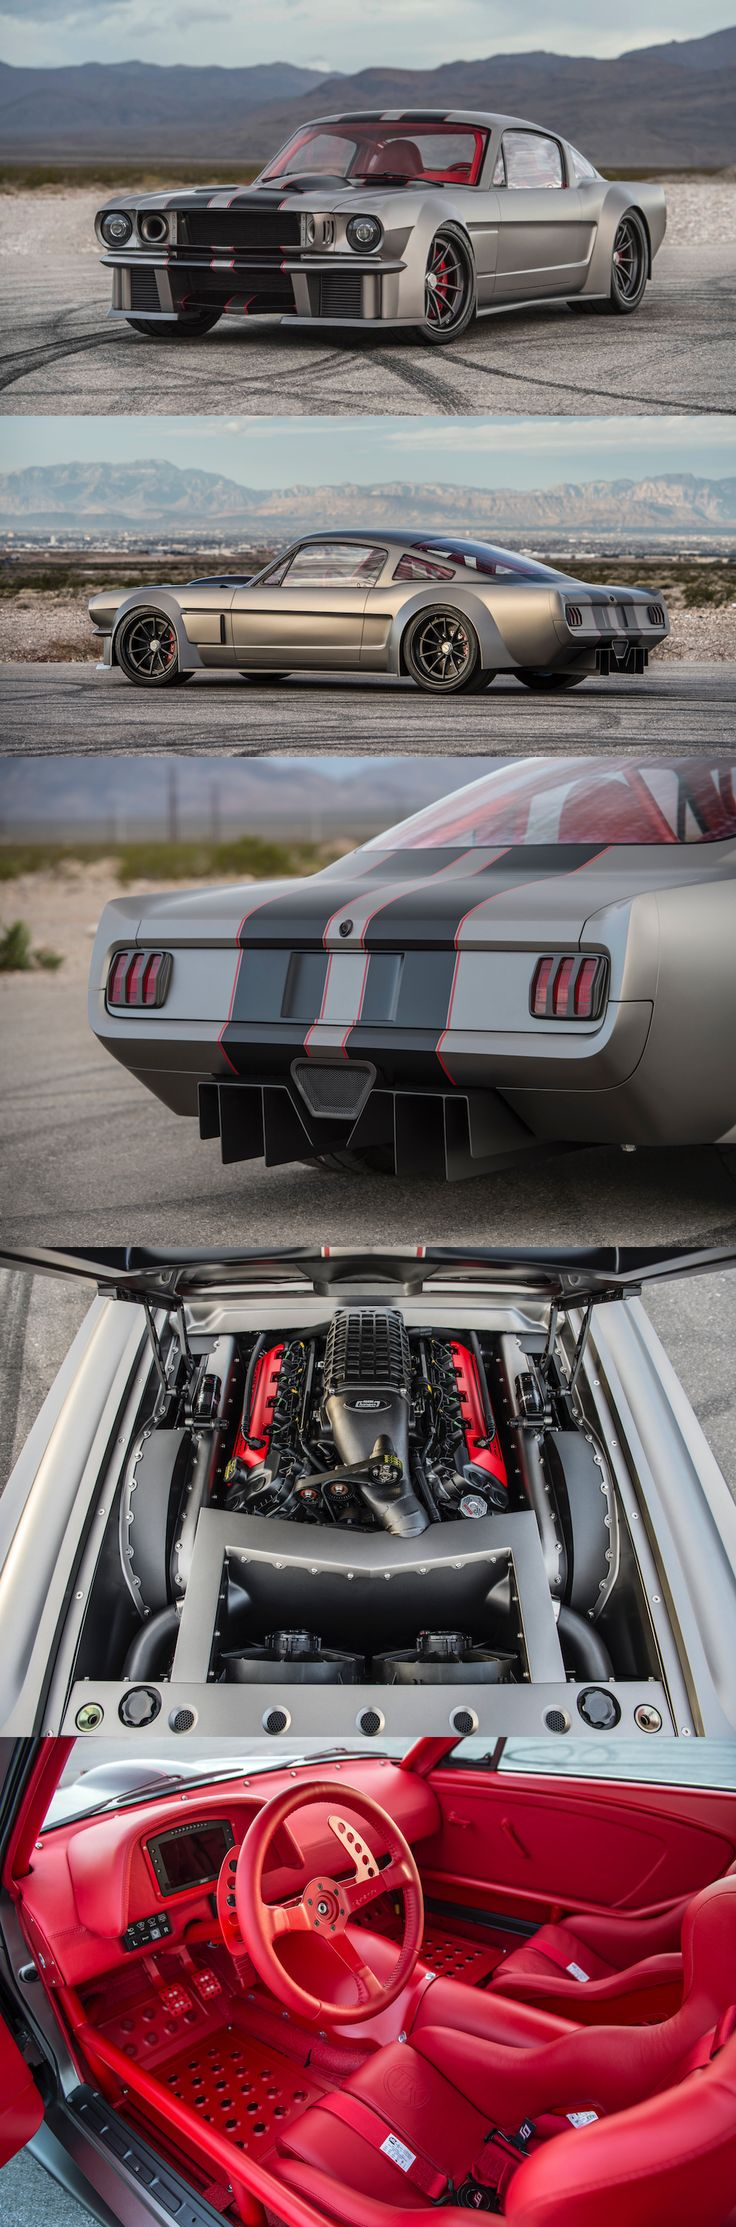 1,000-HP 1965 Ford Mustang by Timeless Kustoms California